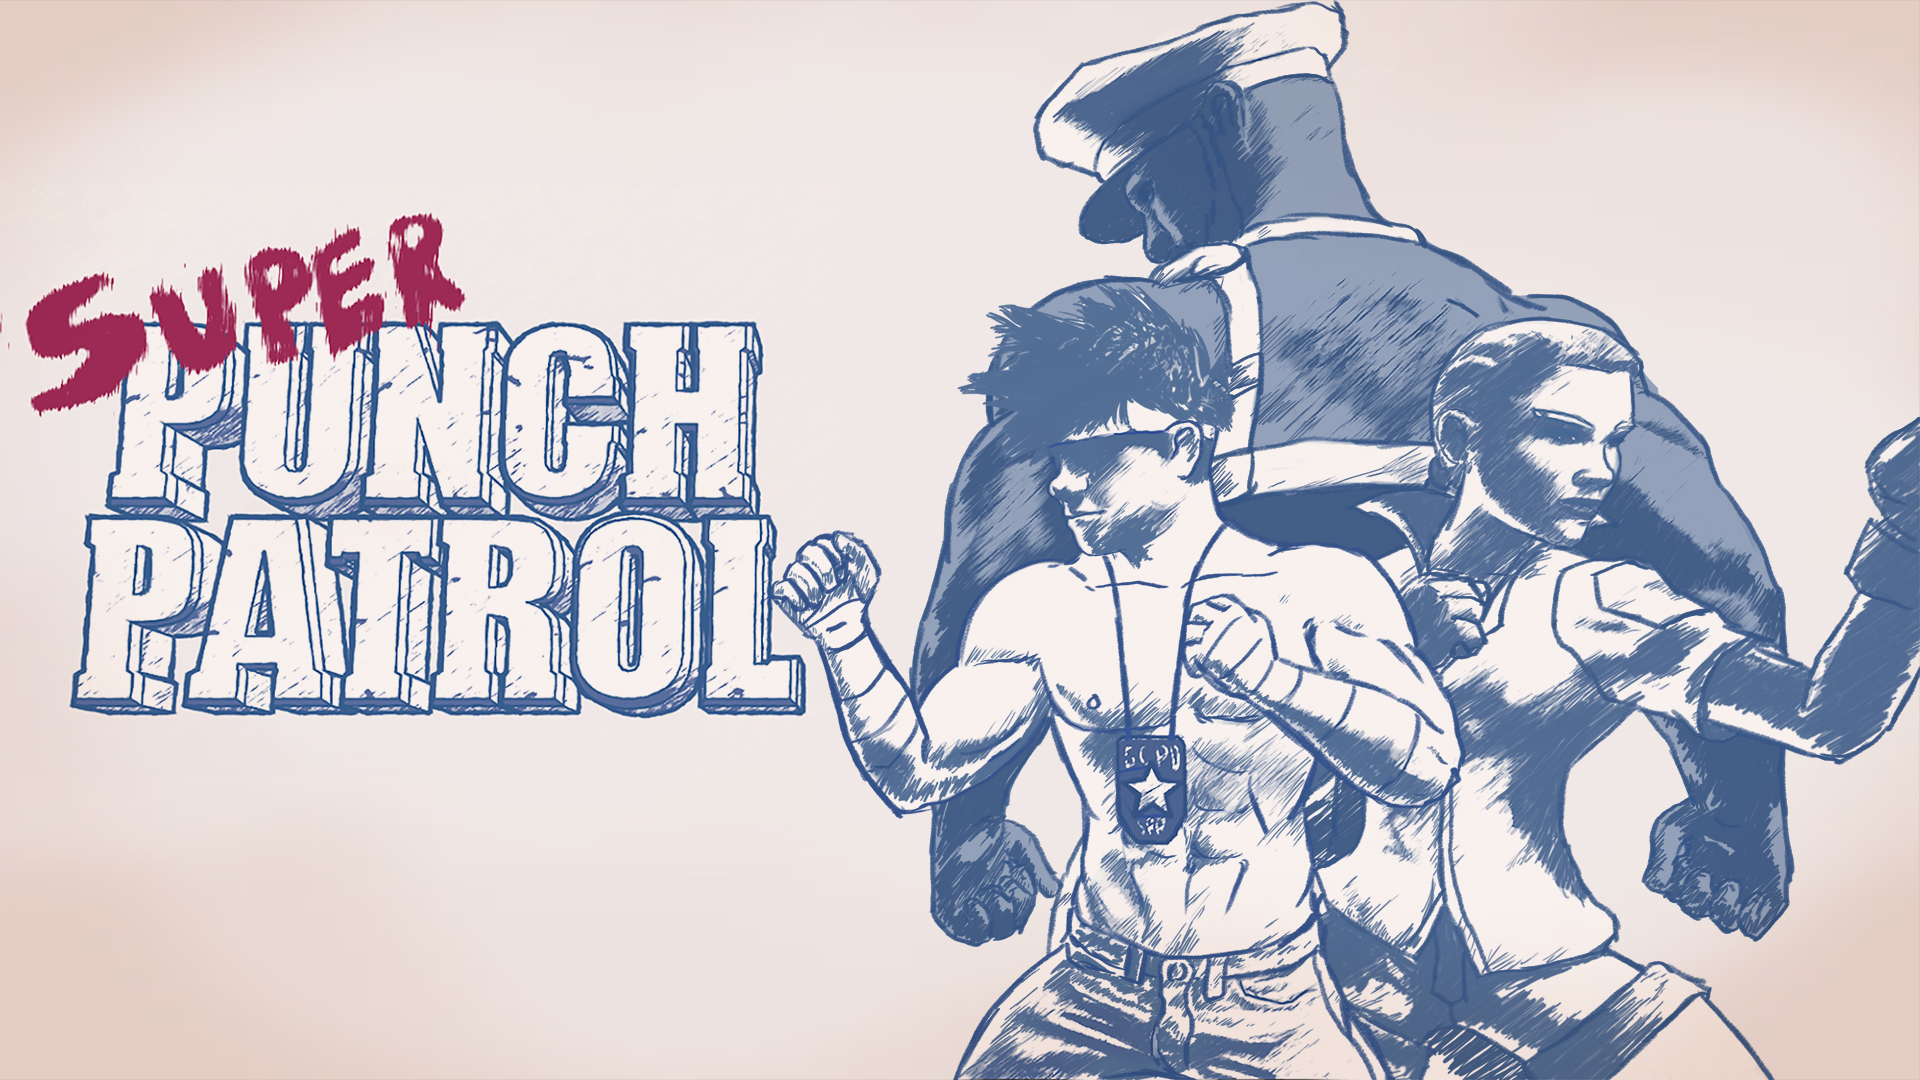 Super Punch Patrol is a brawler from the creator of Gunman Clive and it hits Switch this month screenshot